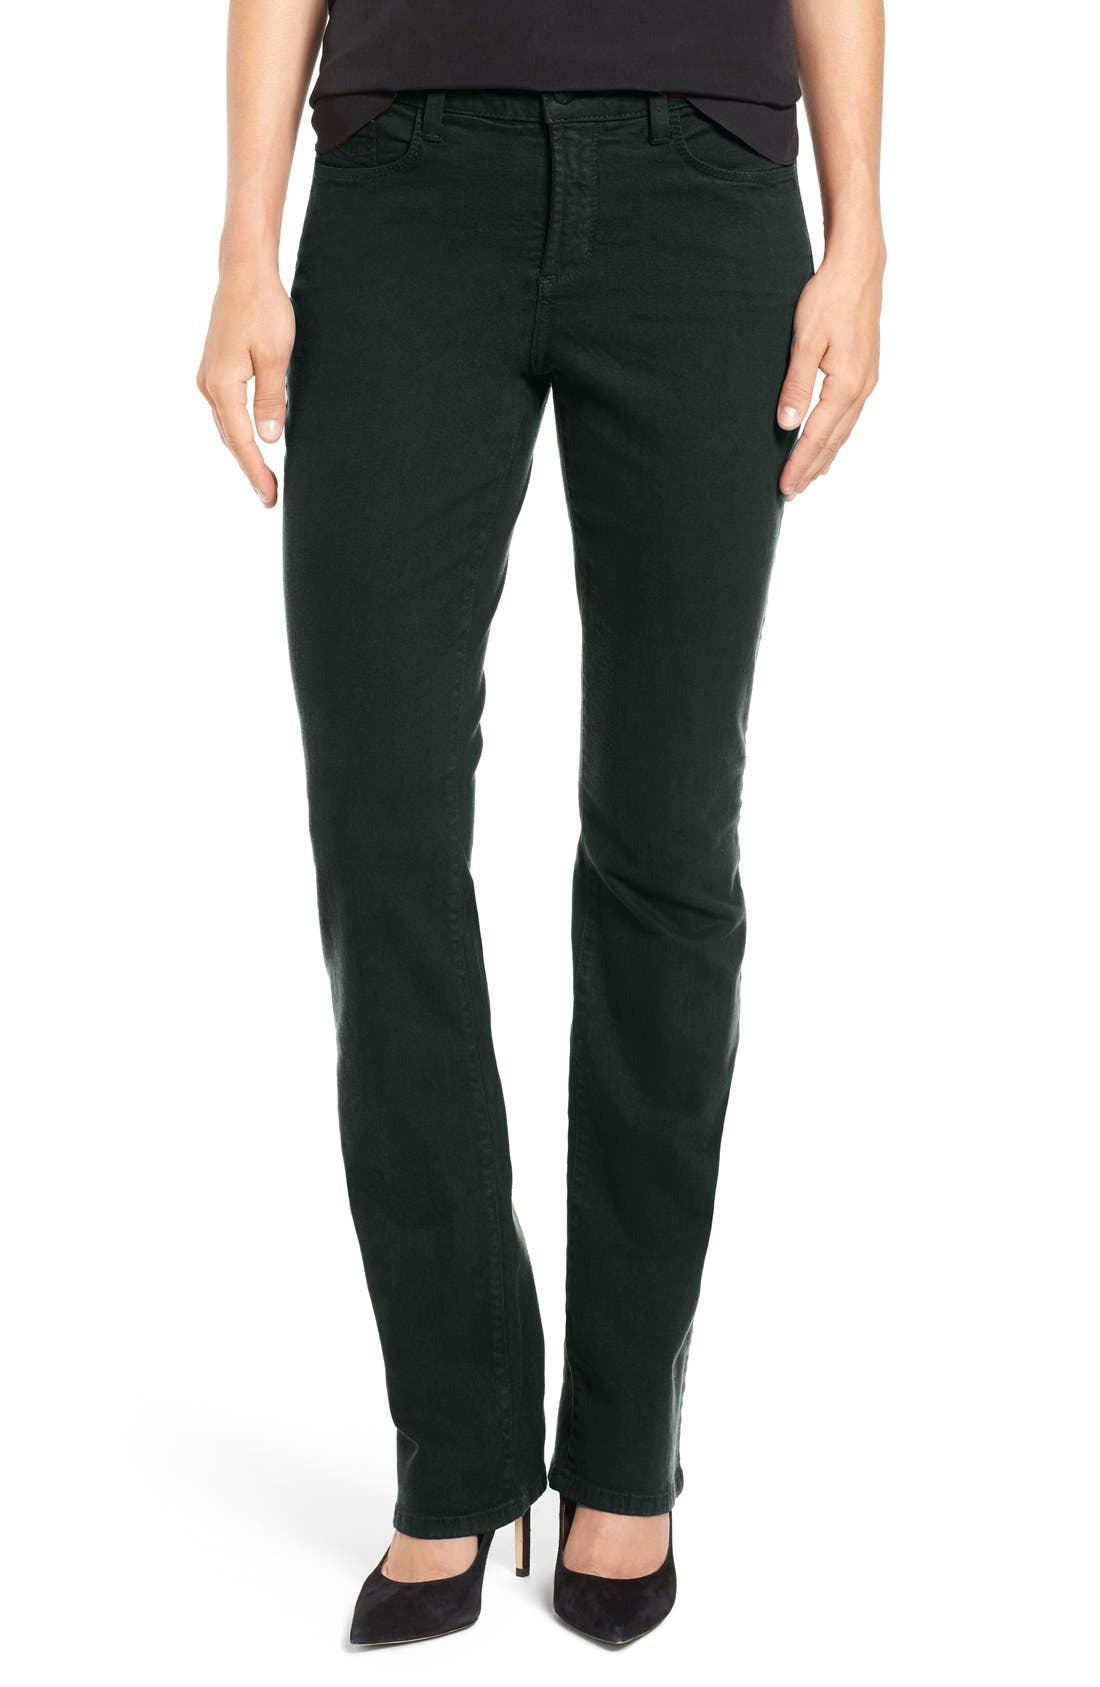 Alternate Image 1 Selected - NYDJ Sheri Stretch Skinny Jeans (Regular & Petite)